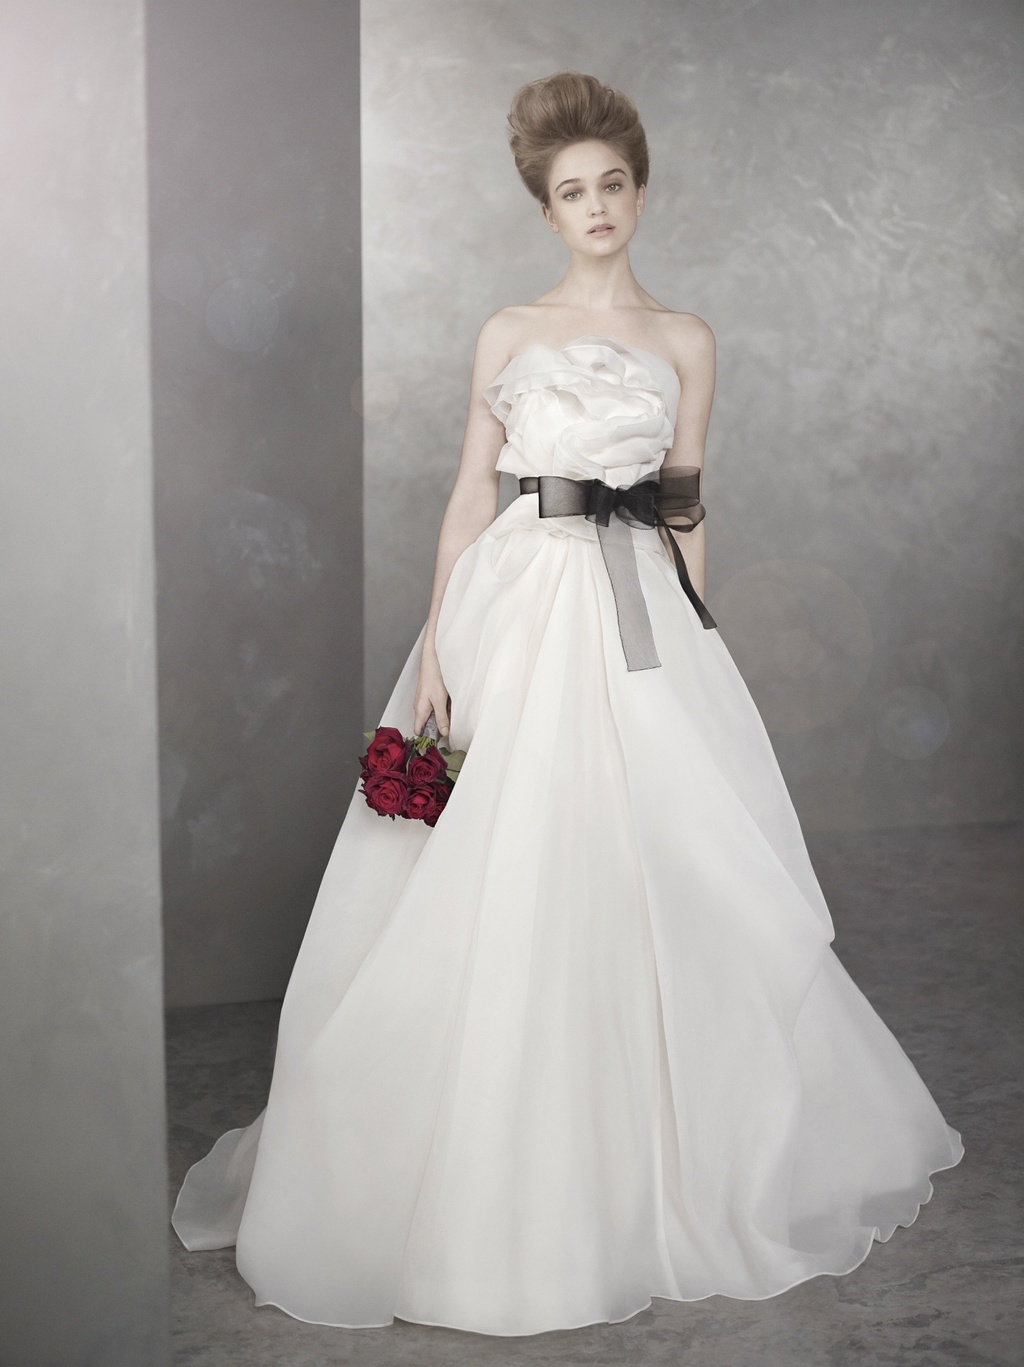 Romantic white by vera wang wedding dress with black sash for White vera wang wedding dresses